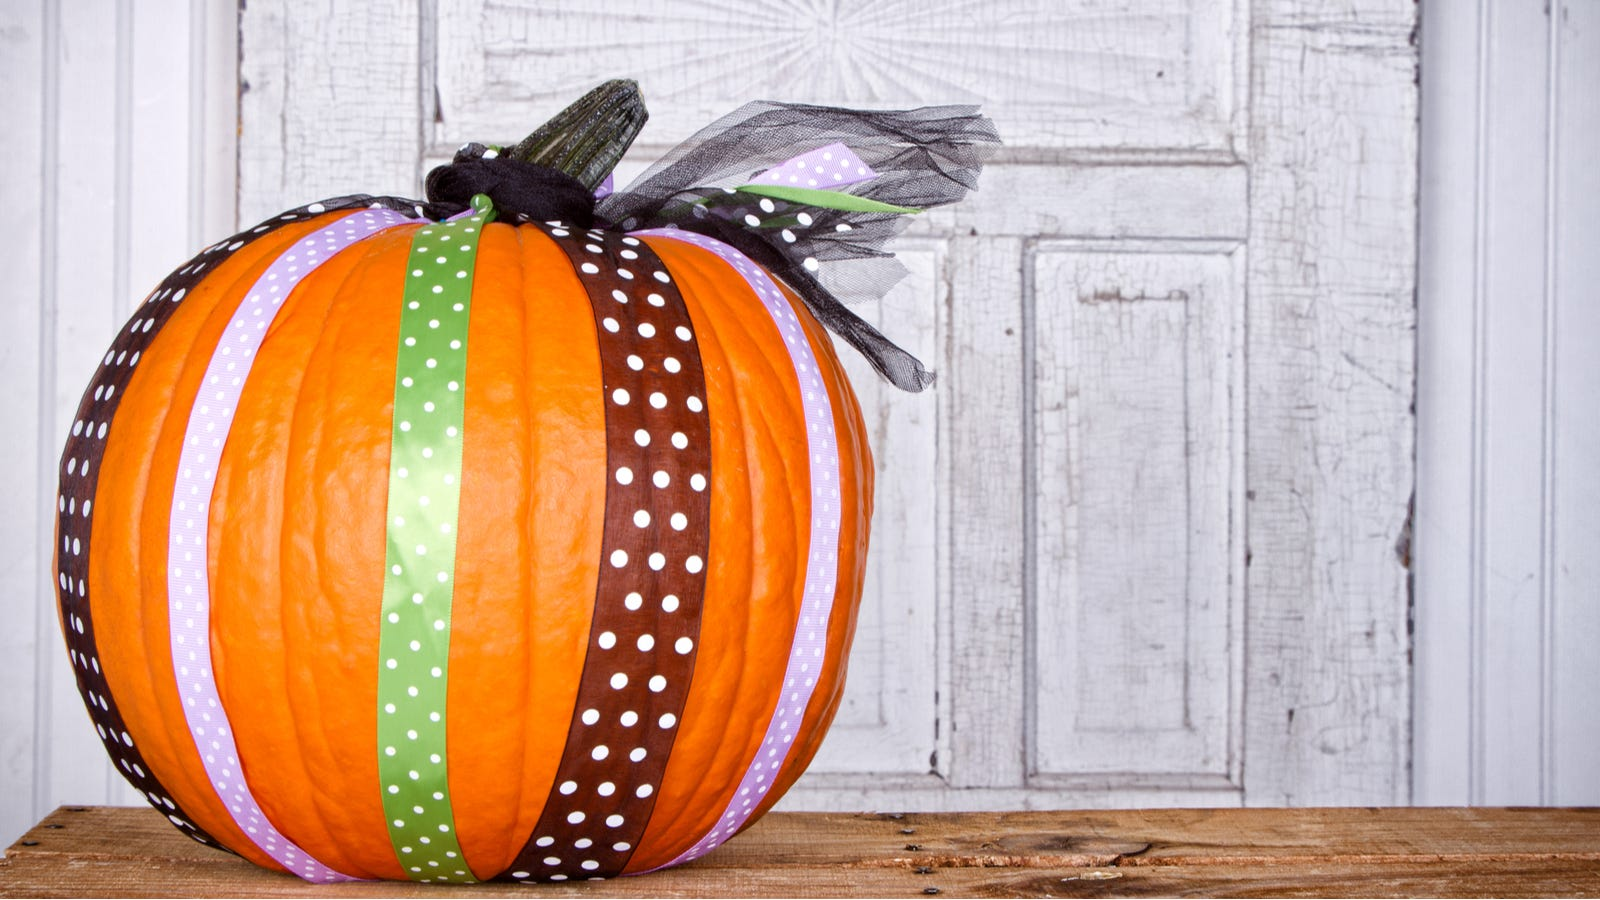 Pumpkin wrapped up with ribbons